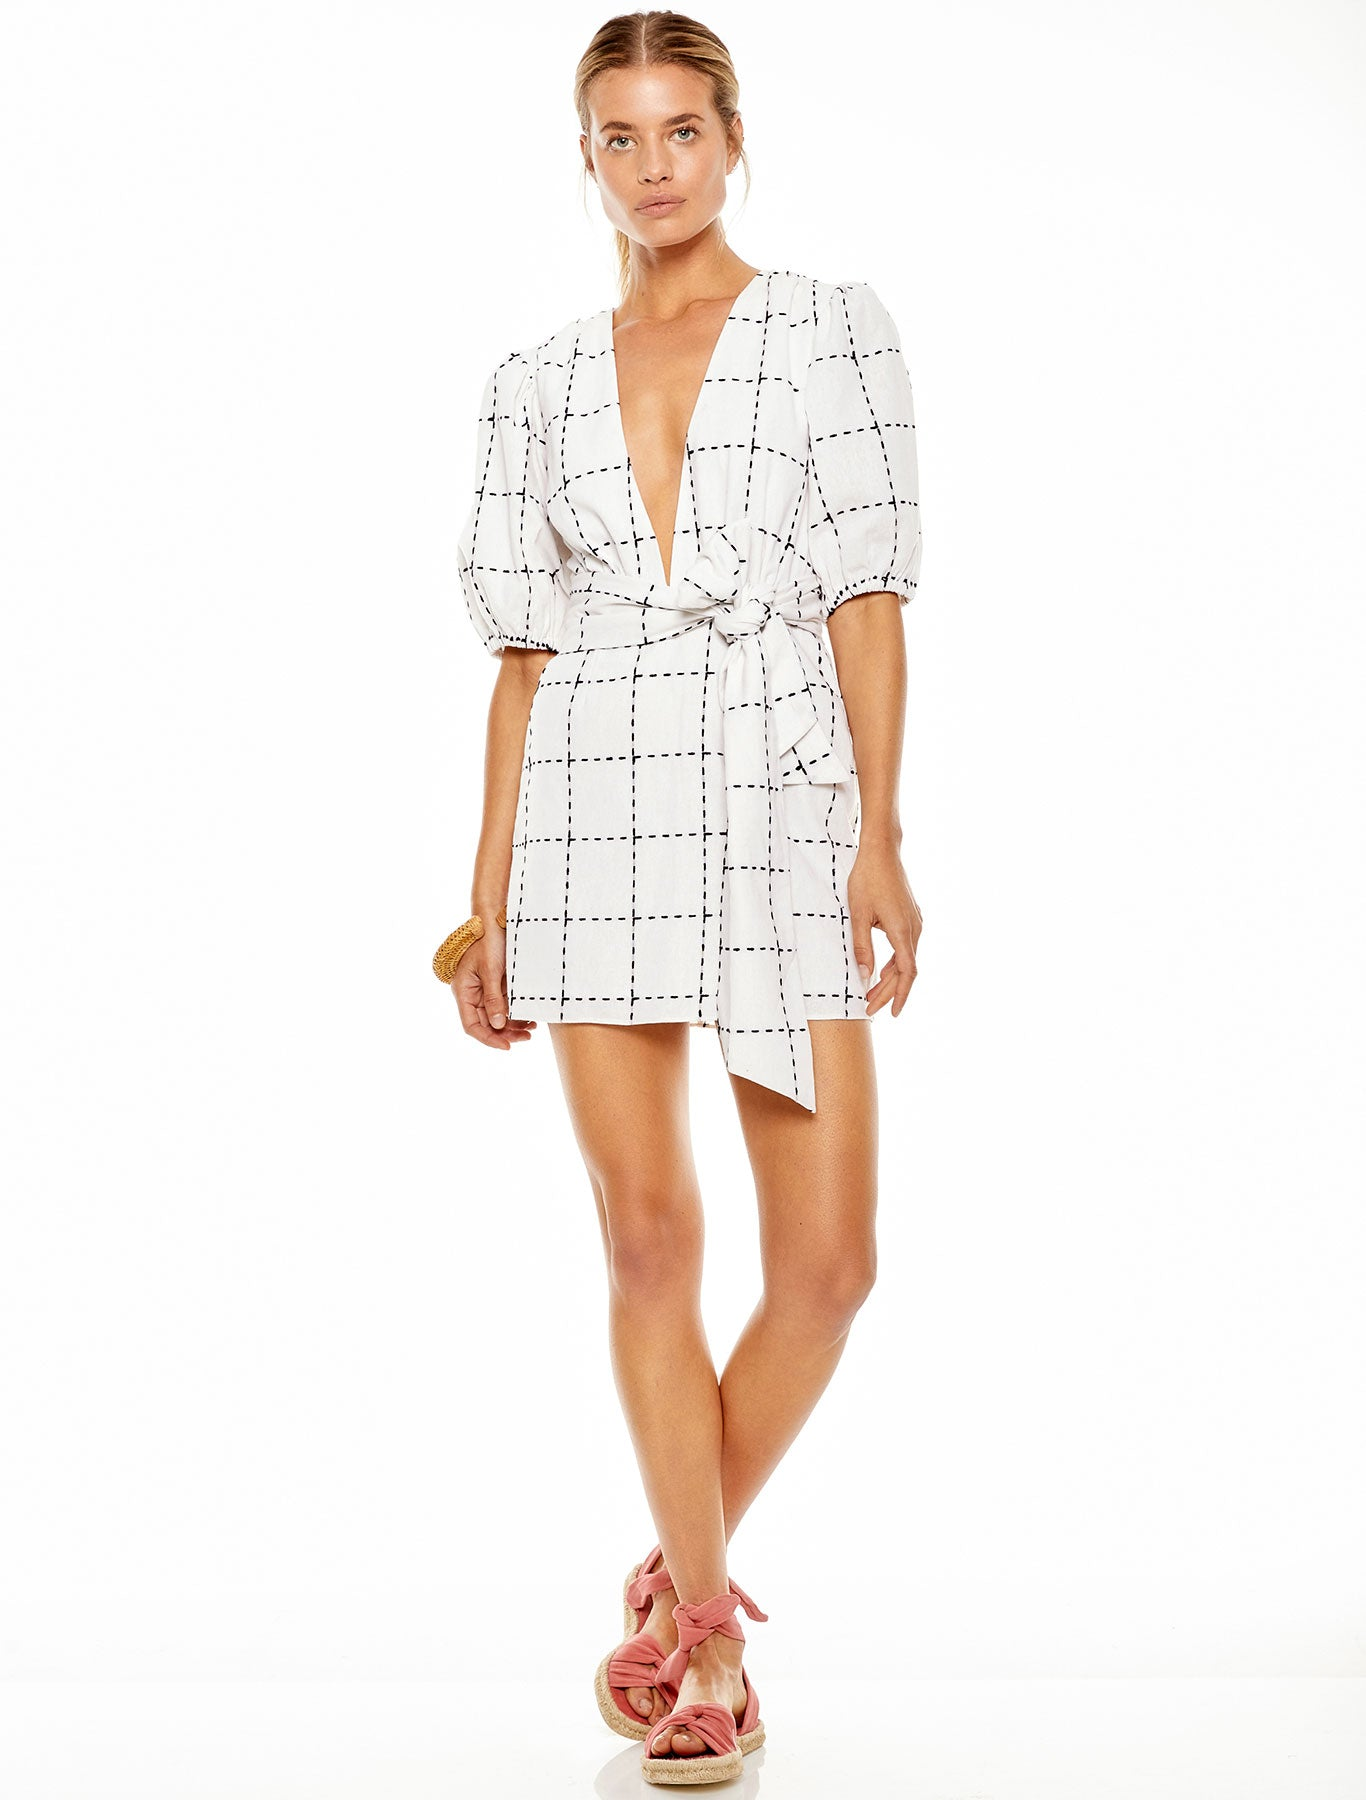 DIALOGUE MINI DRESS